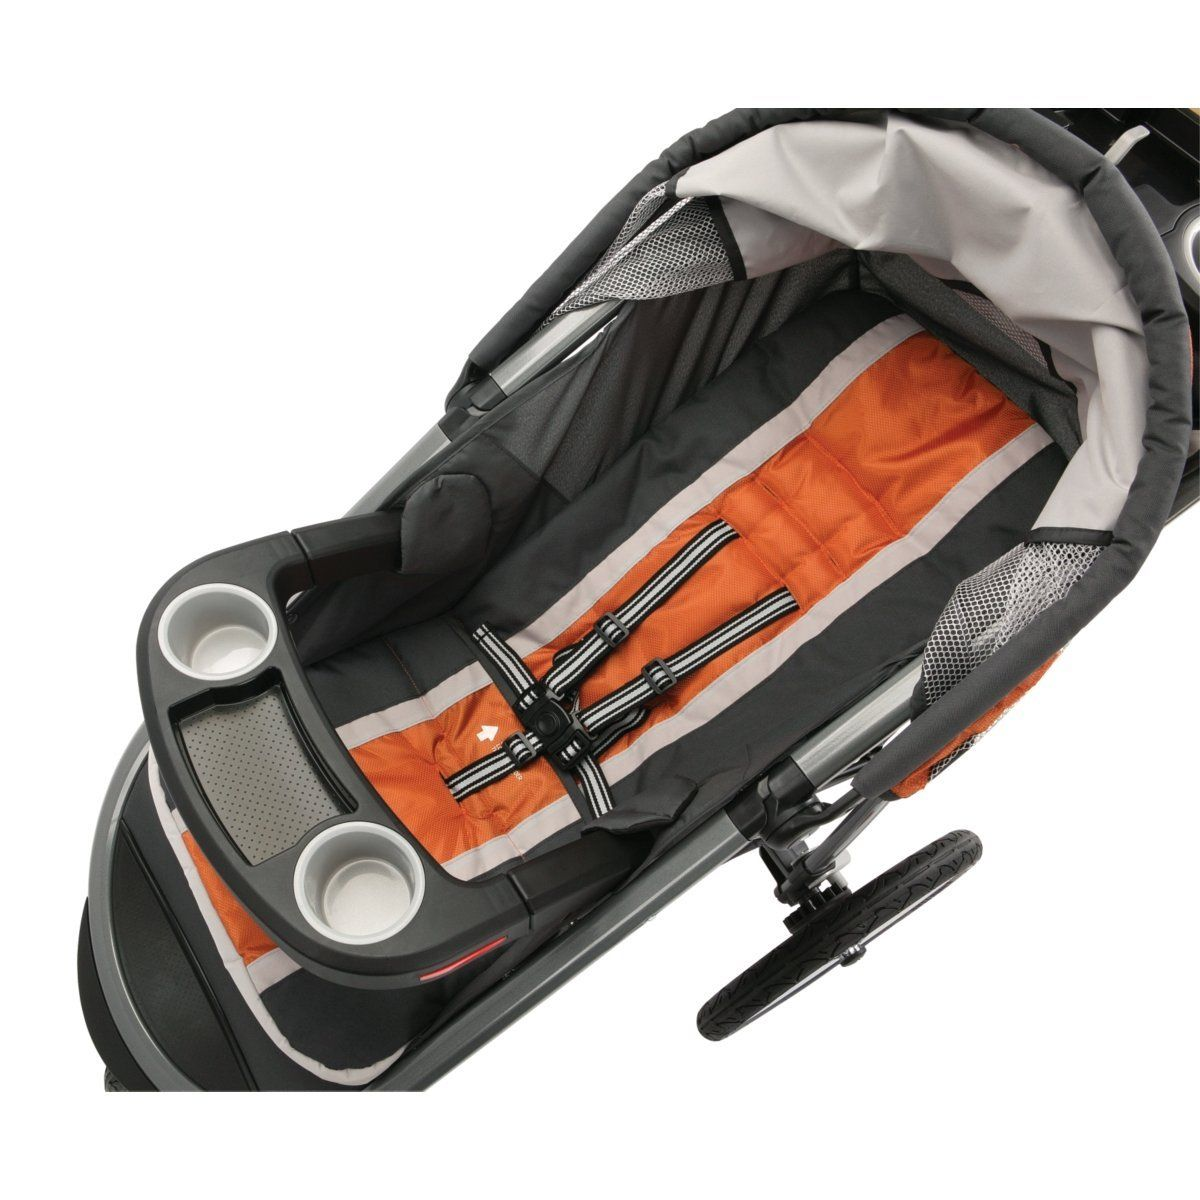 Graco FastAction Fold Jogger Click Connect Stroller, Tangerine - See more at: http://baby.florenttb.com/baby/strollers/joggers/graco-fastaction-fold-jogger-click-connect-stroller-tangerine-com/